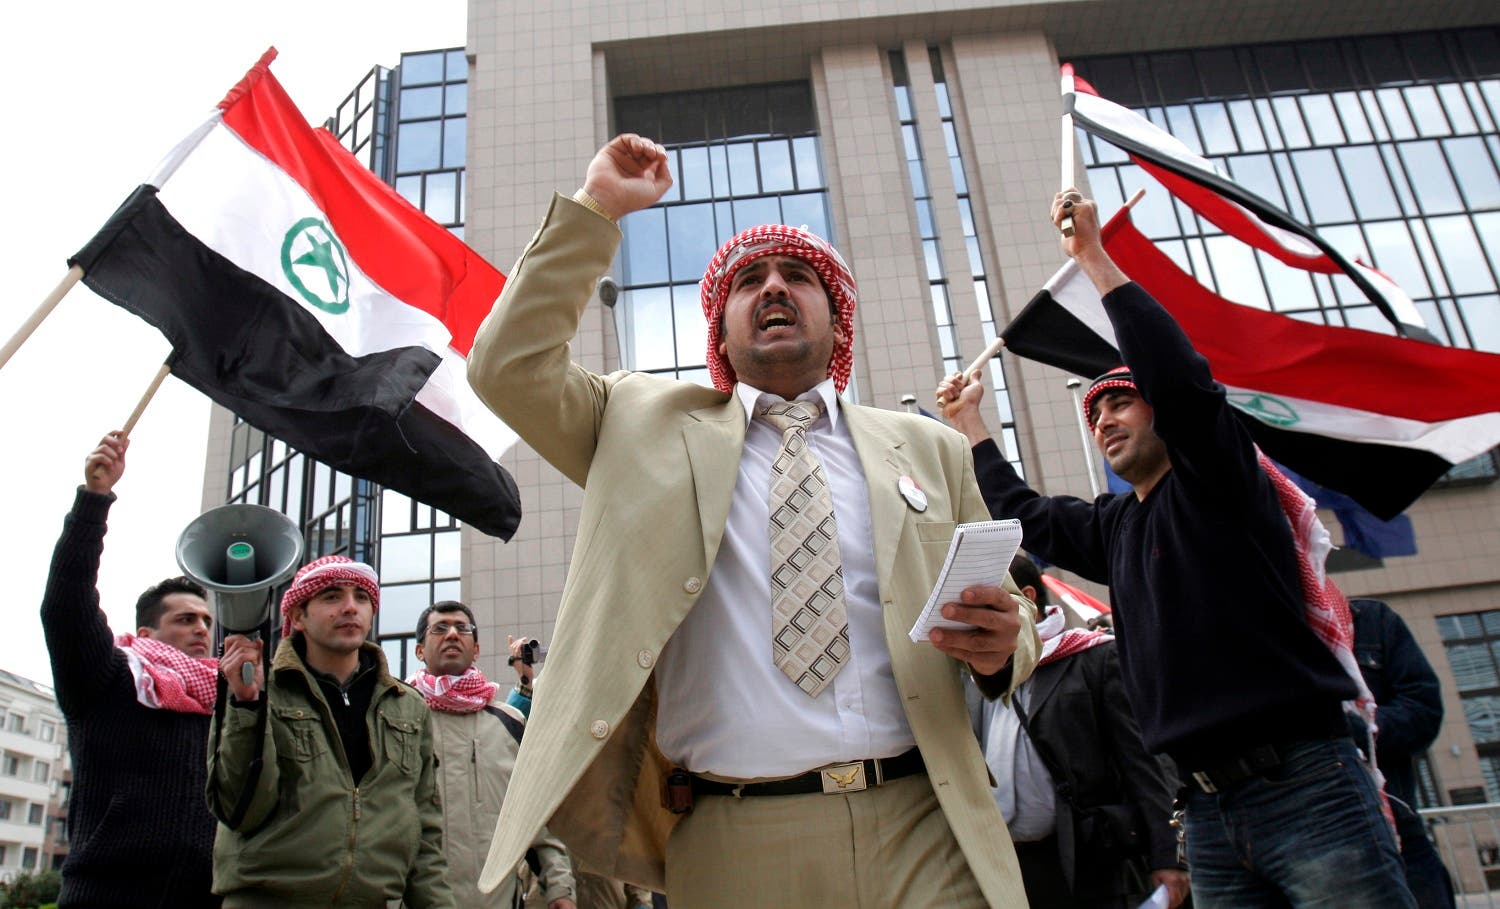 An unidentified man chants as others wave the flag of the Al Ahwaz Liberation Organization during a protest in front of the European Council building in Brussels, on April 18, 2008. (AP)